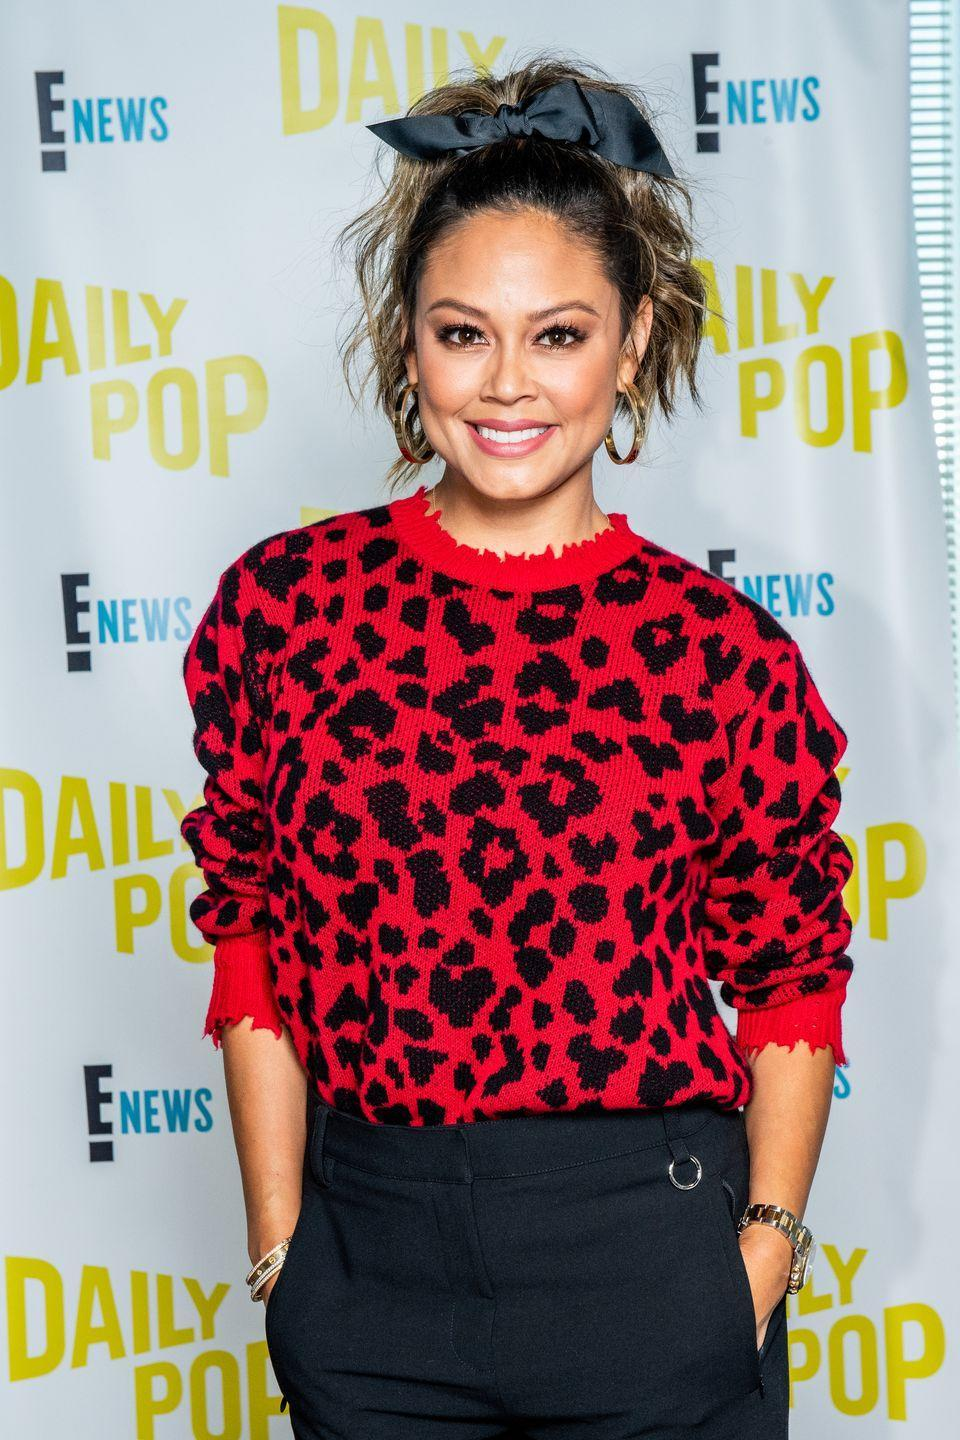 <p>After her pageant run, Vanessa attended college, then was an MTV VJ on <em>Total Request Live. </em>She recently hosted the Netflix dating show <em>Love Is Blind </em>with her husband, Nick Lachey.</p>